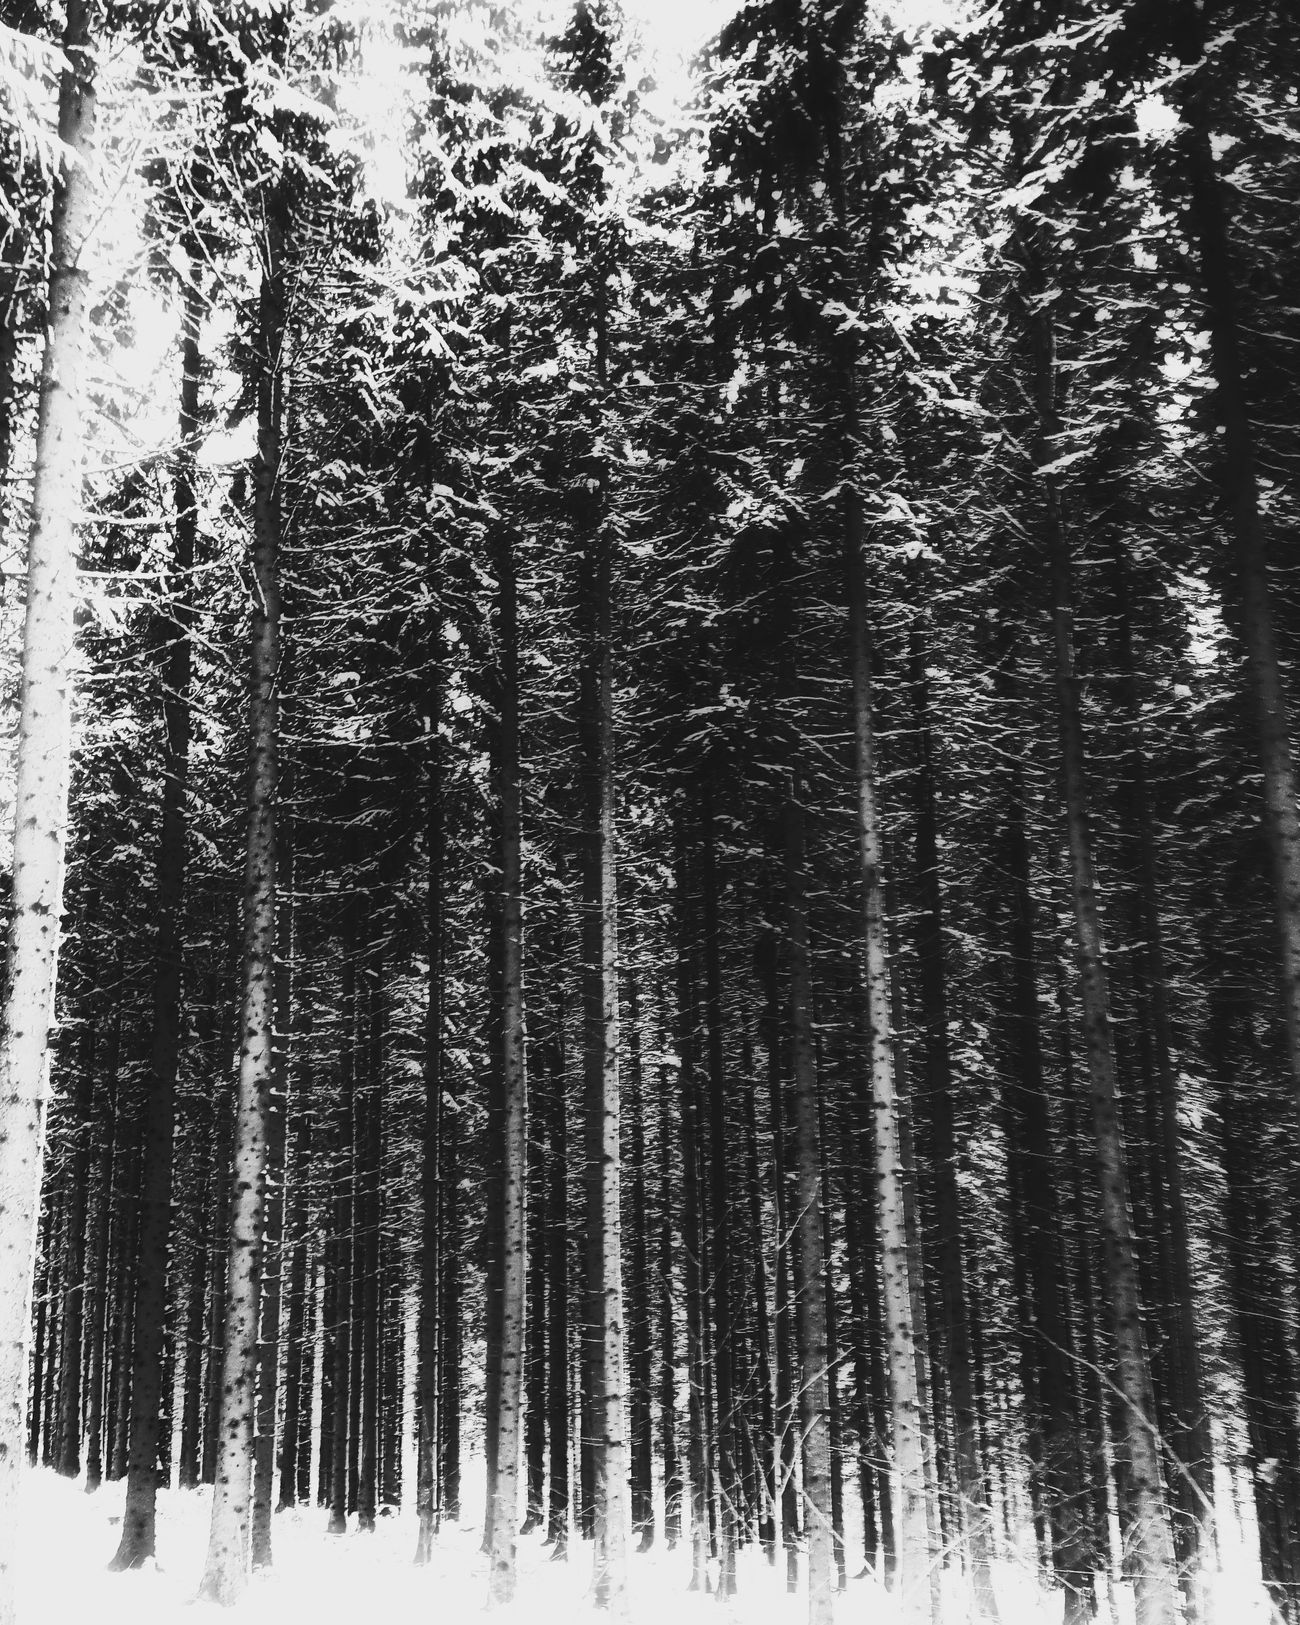 In to the woods I have to go... Tree Nature Growth Beauty In Nature Winterishere Winteriscoming Snow Winter Cold Temperature Sweden Life Is Adventure Explore Discover Pursue Enjoying Life Dalarna Outdoors Scenics Tranquility Blackandwhite